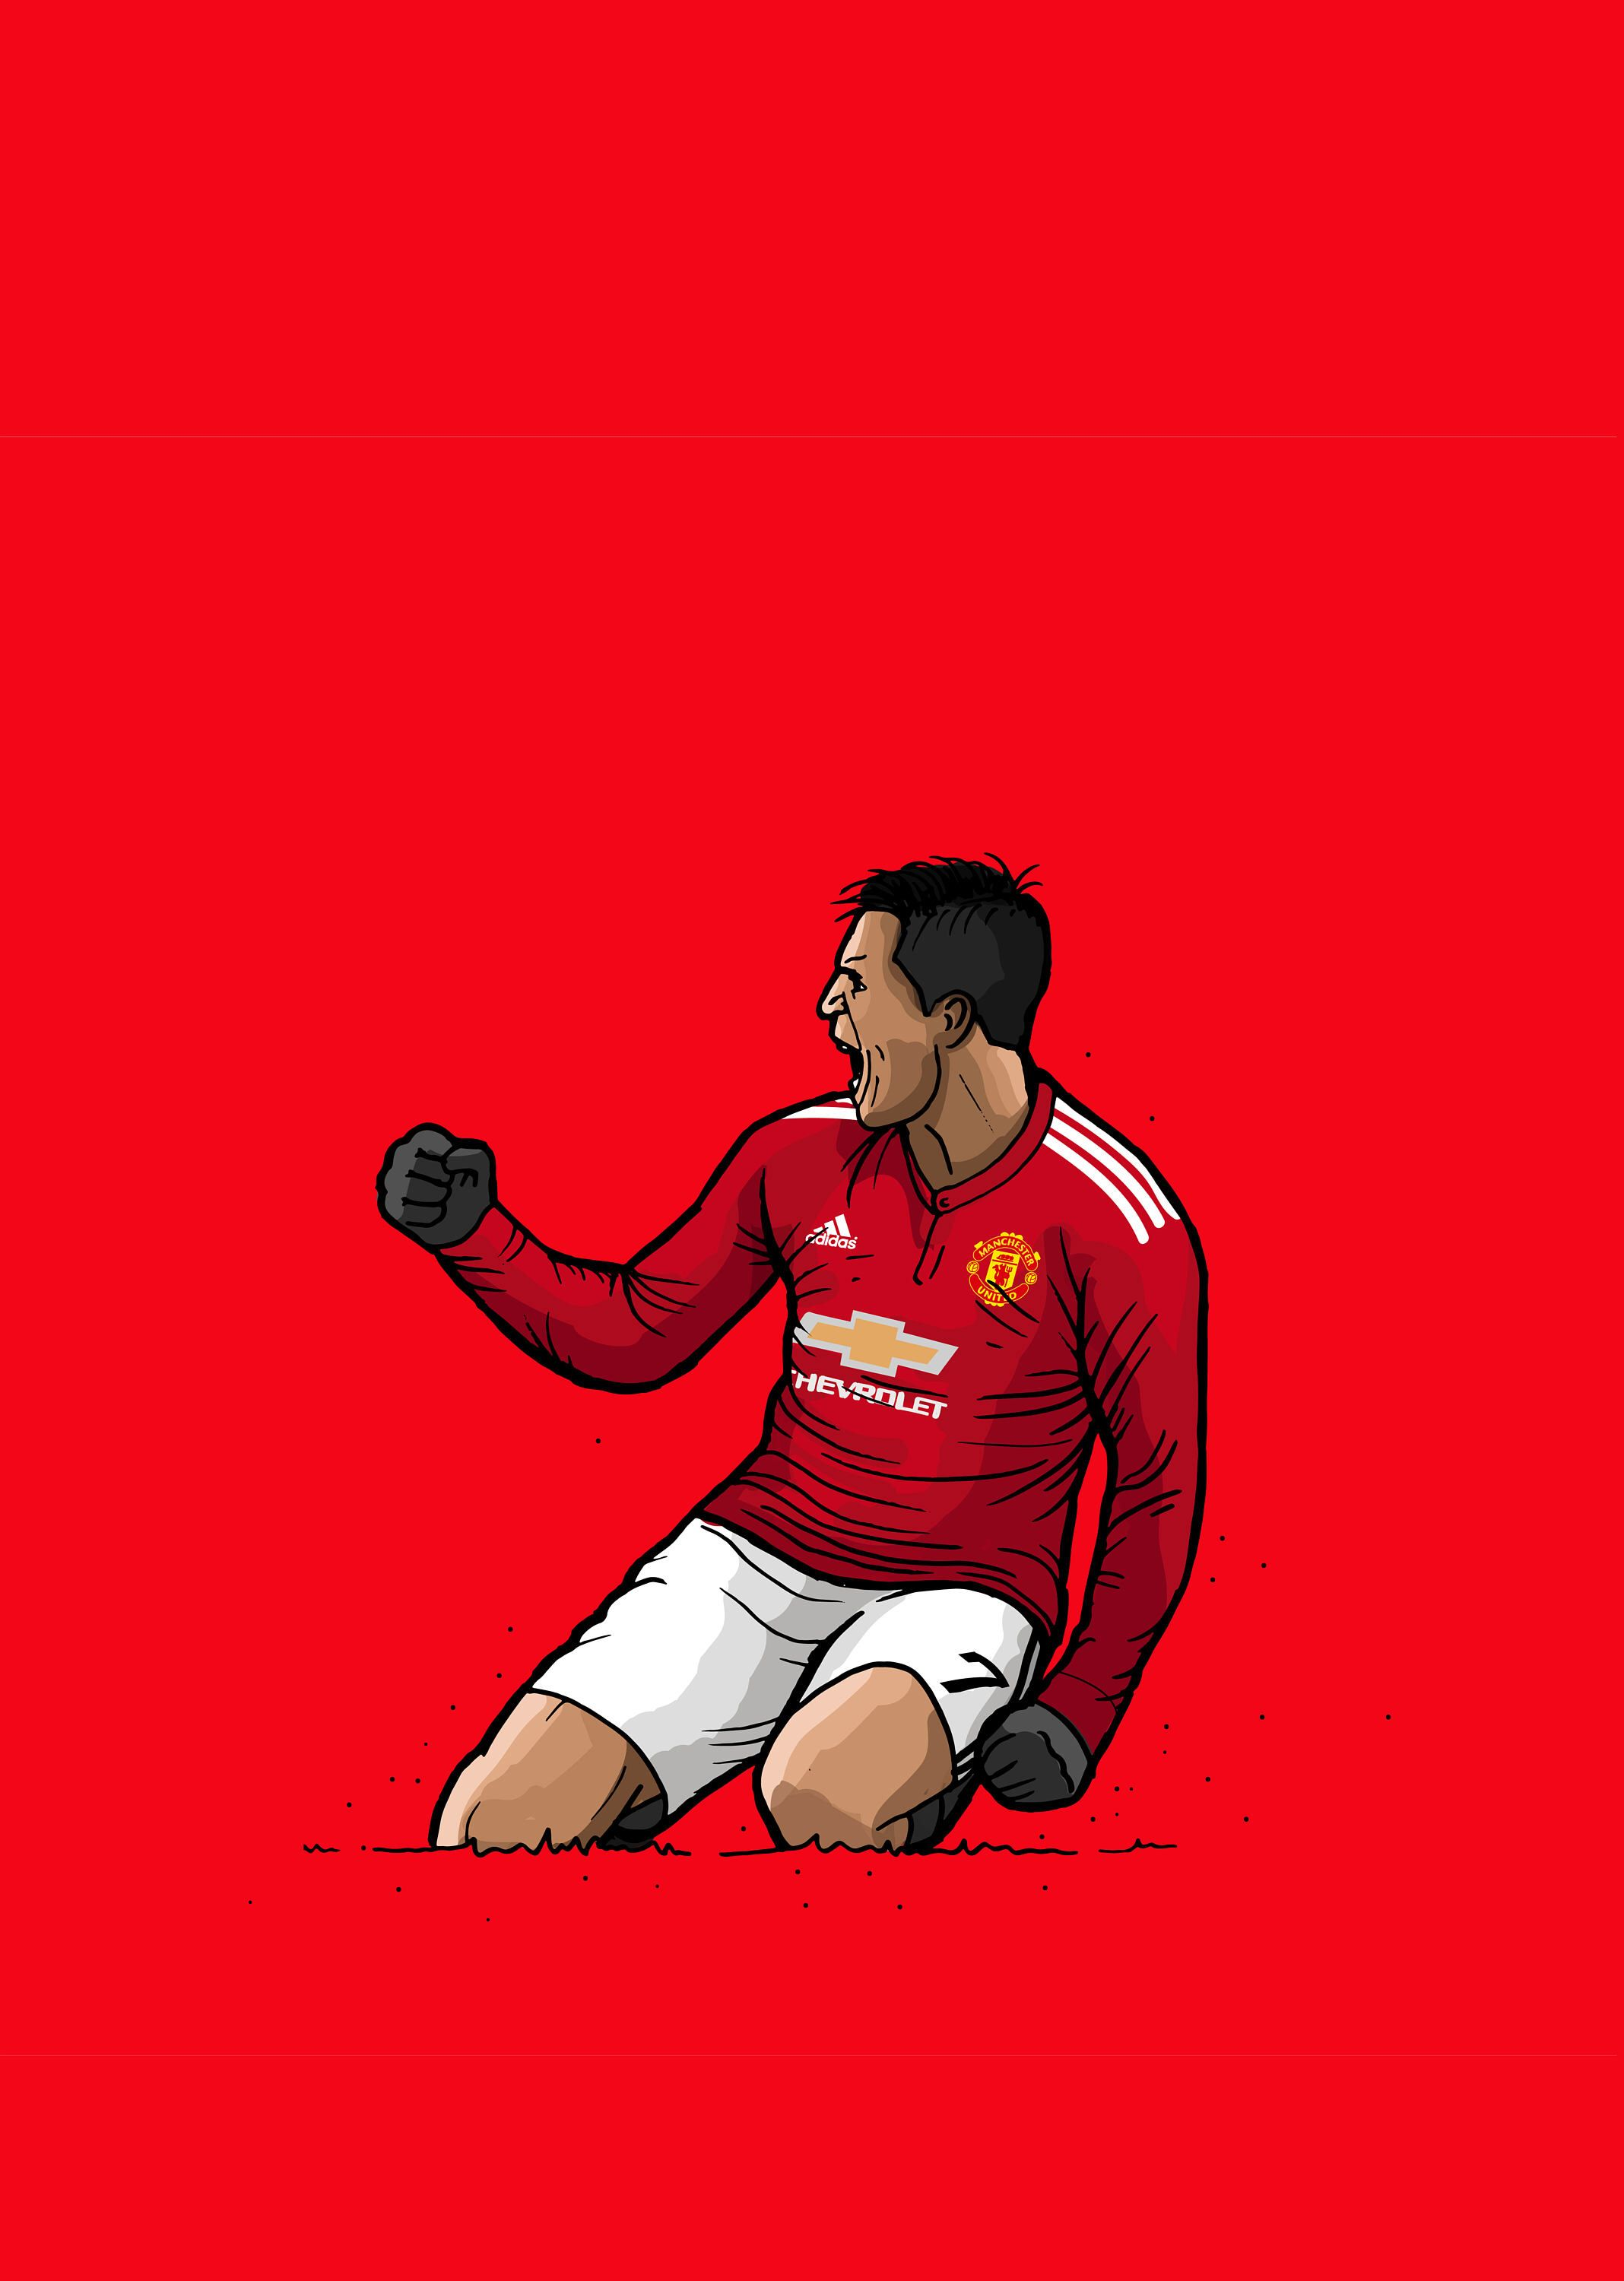 Manchester United Wallpaper Manchester United Cartoon Wallpaper